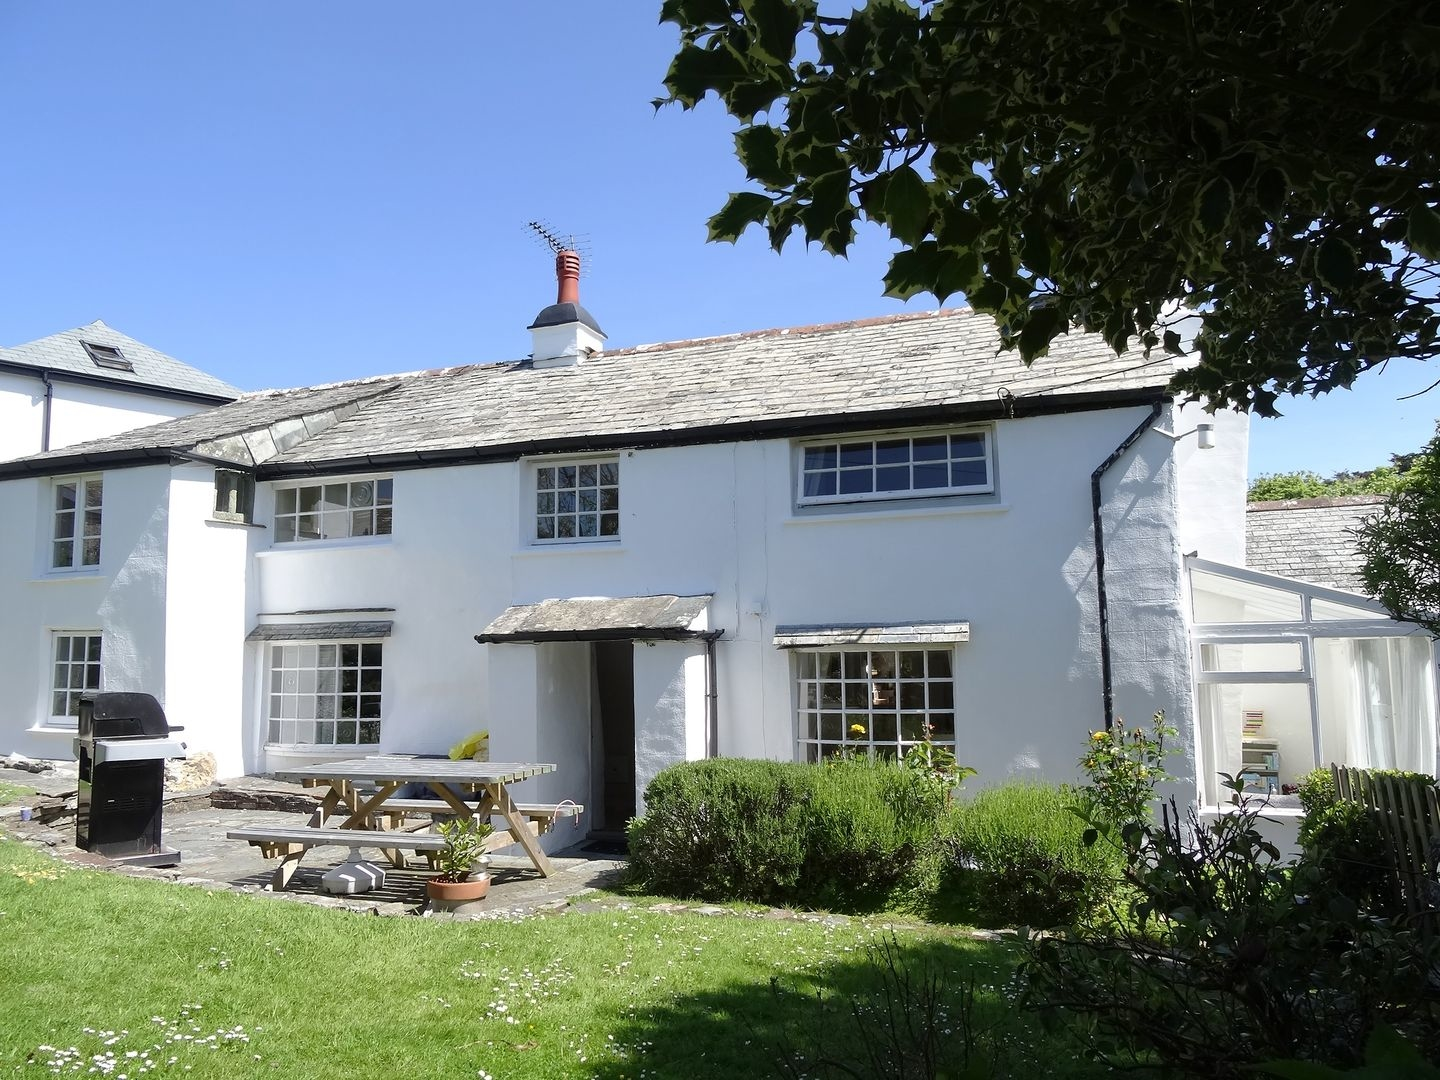 Ayr Cottage, Tintagel, Cornwall